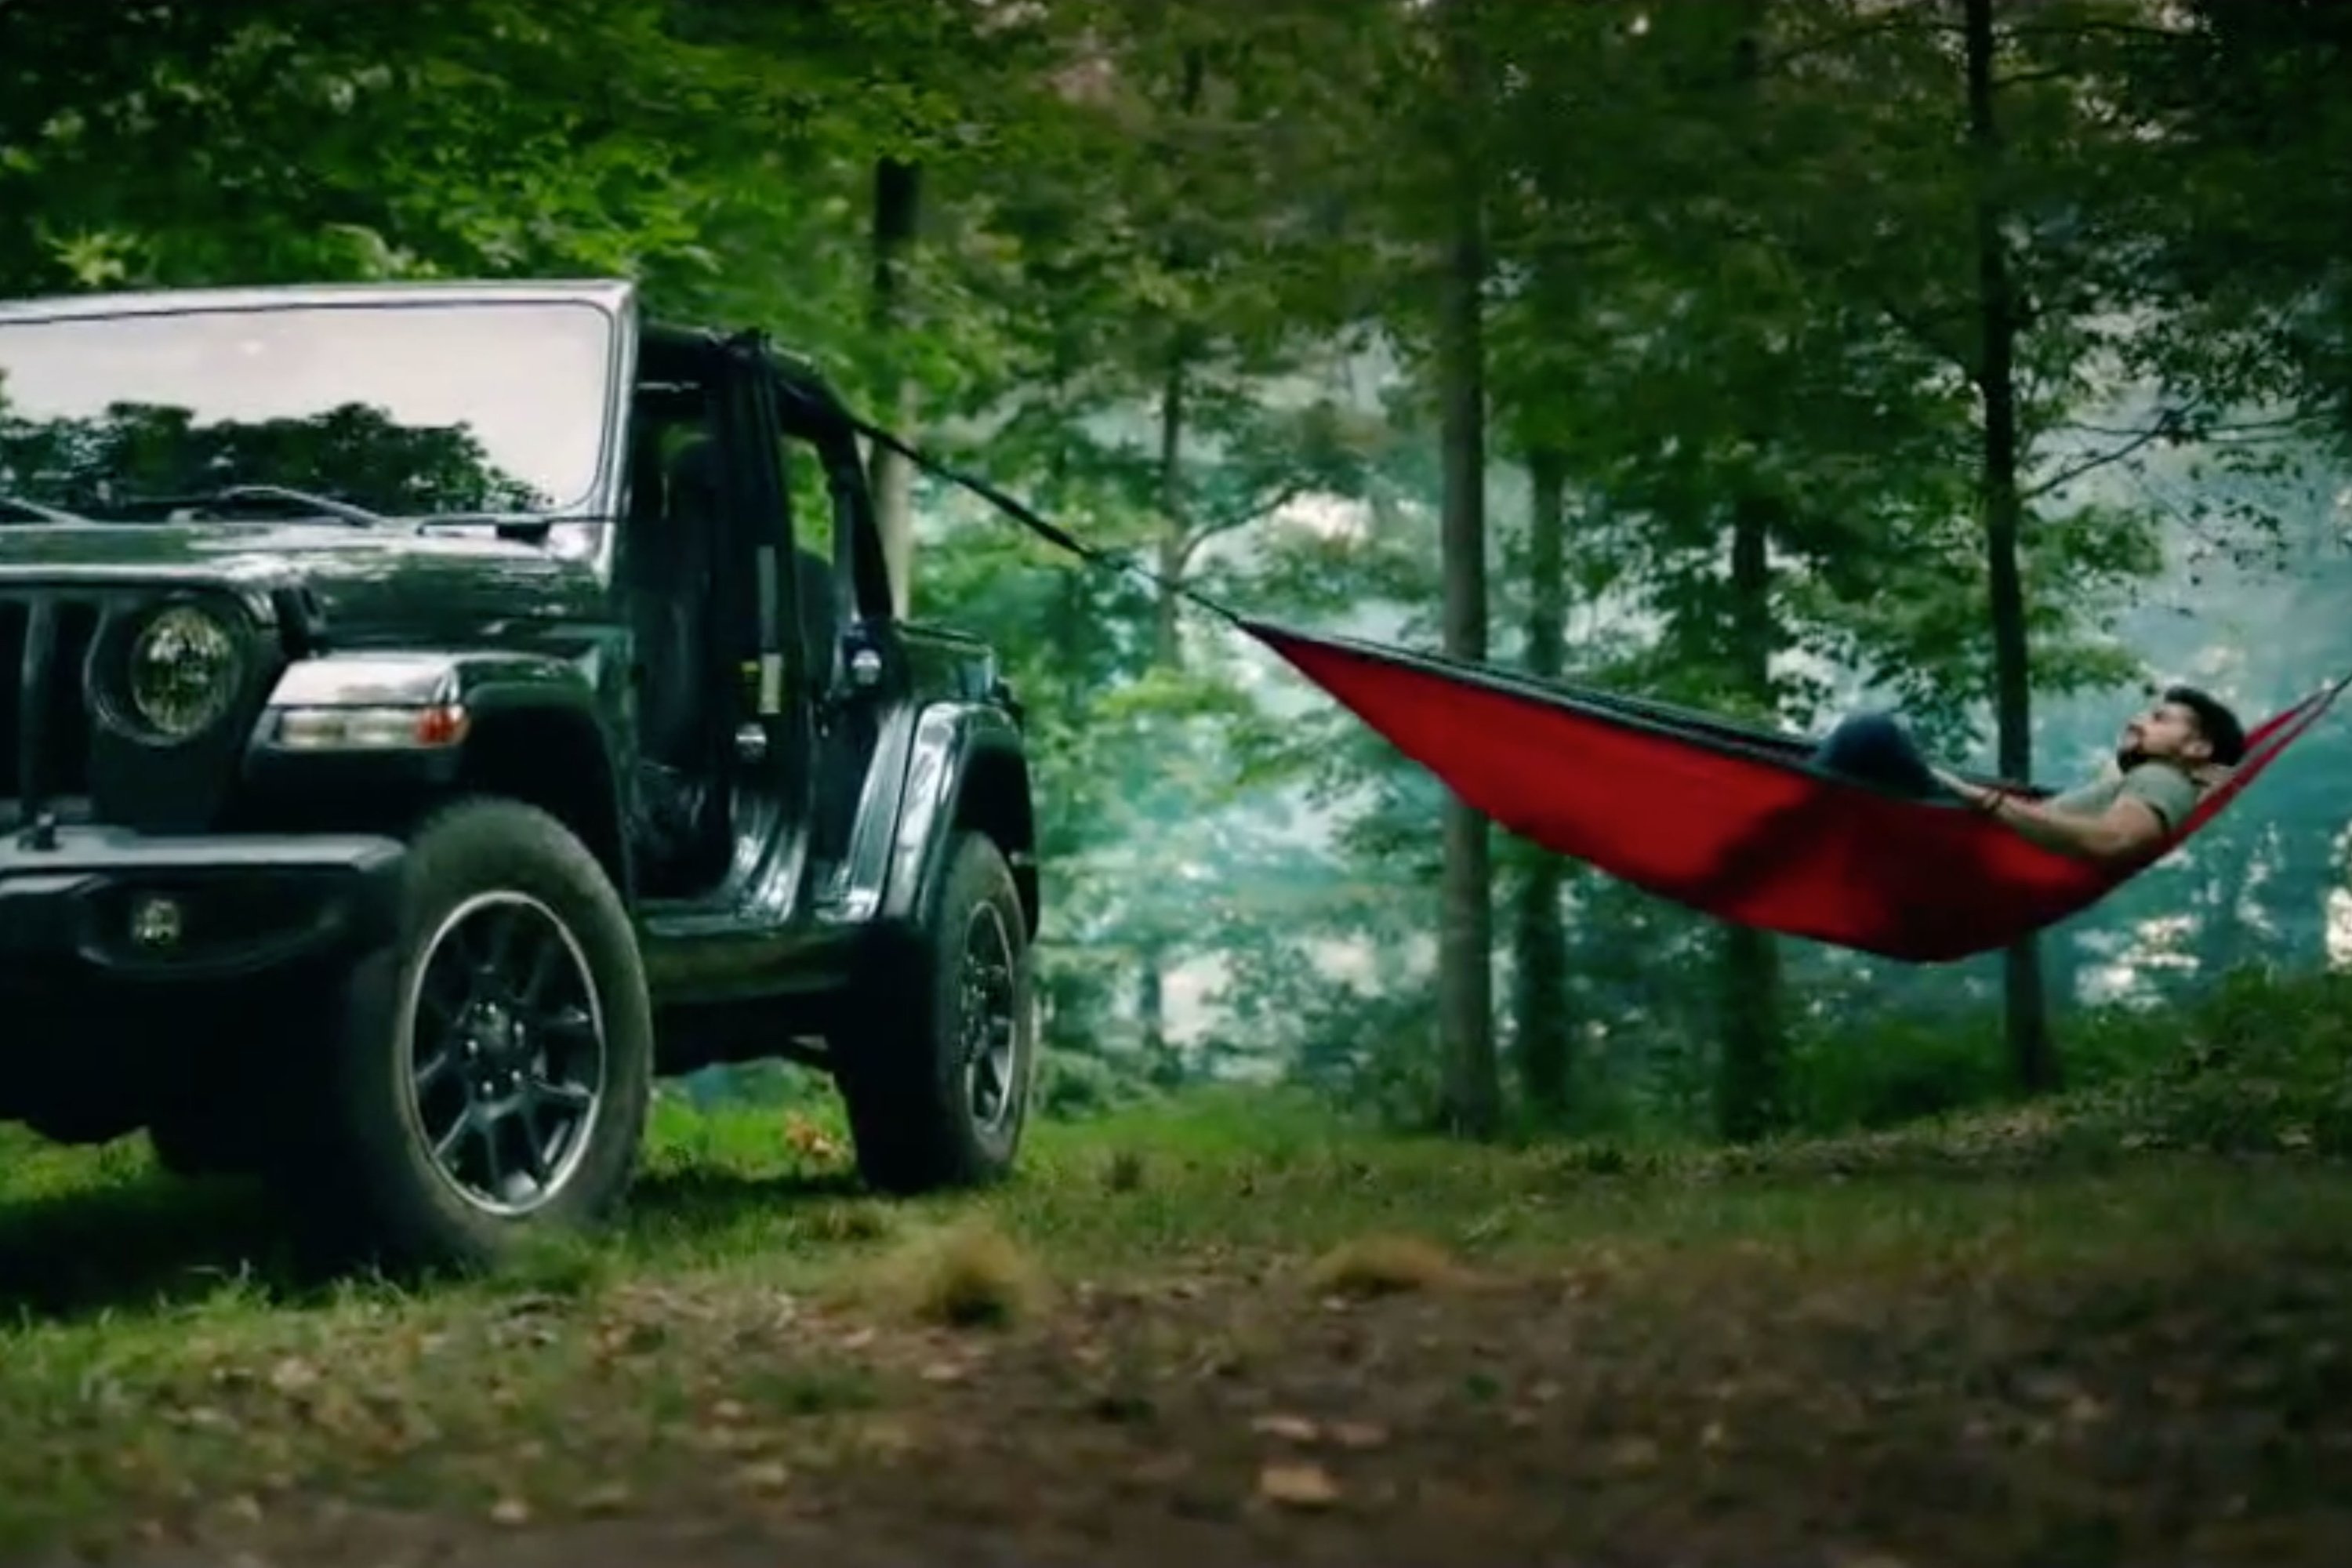 Watch the newest commercials on TV from Apple, Jeep, Jägermeister and more